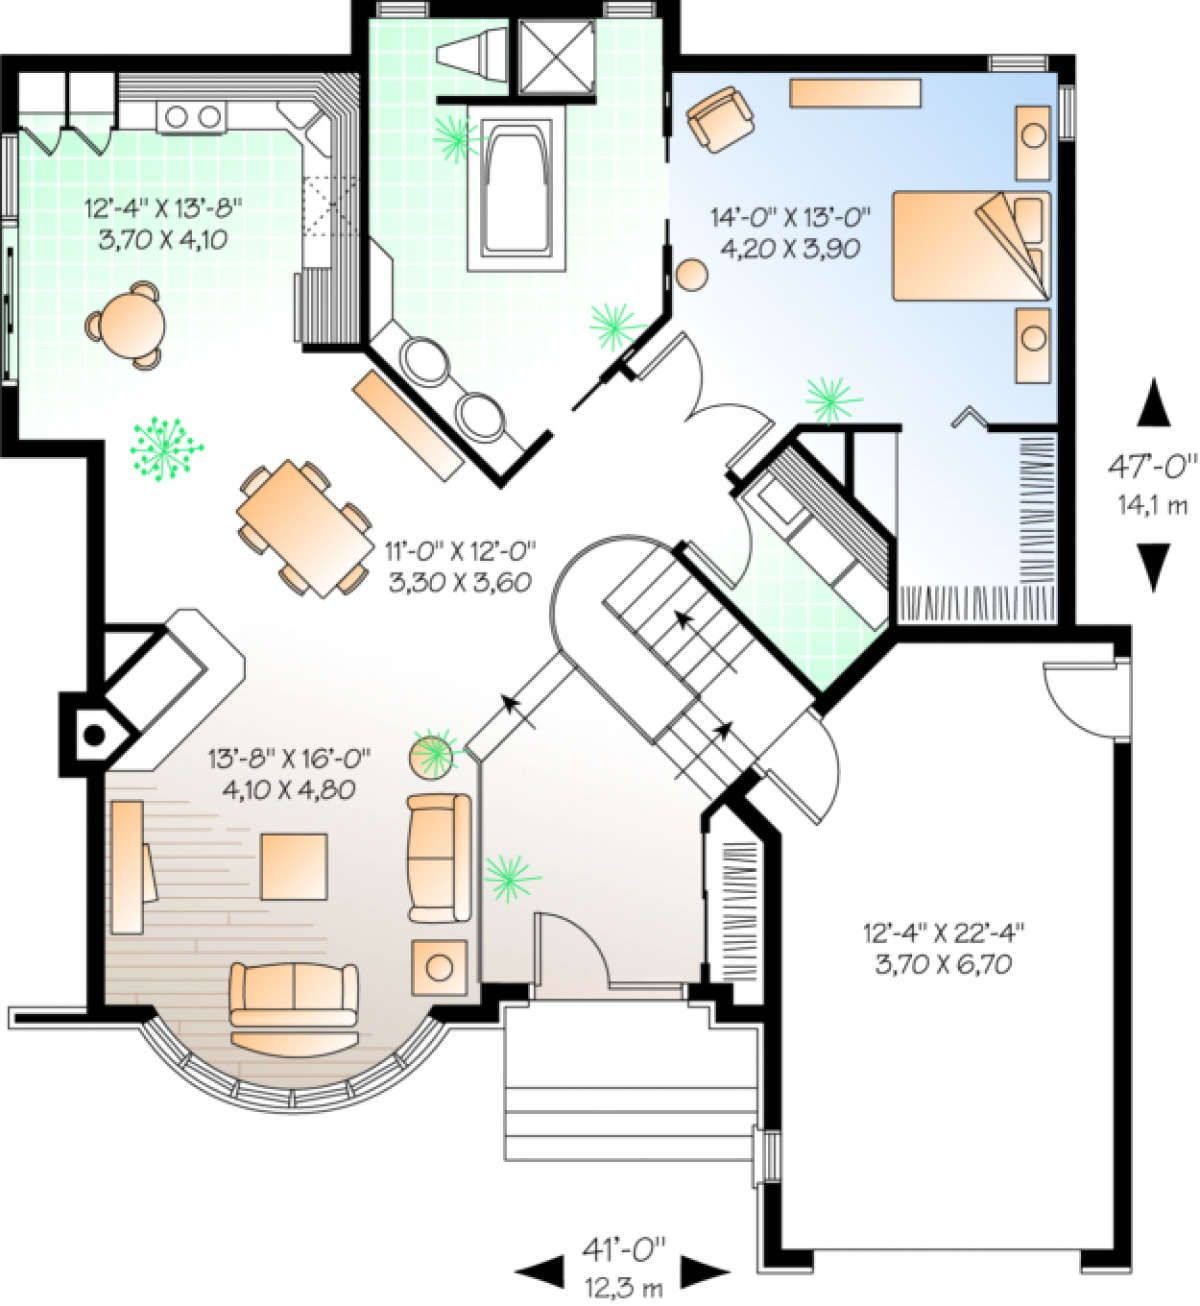 House Plan 034 00006 European Plan 1 231 Square Feet 1 2 Bedrooms 1 Bathroom House Plans Victorian House Plans Vacation House Plans